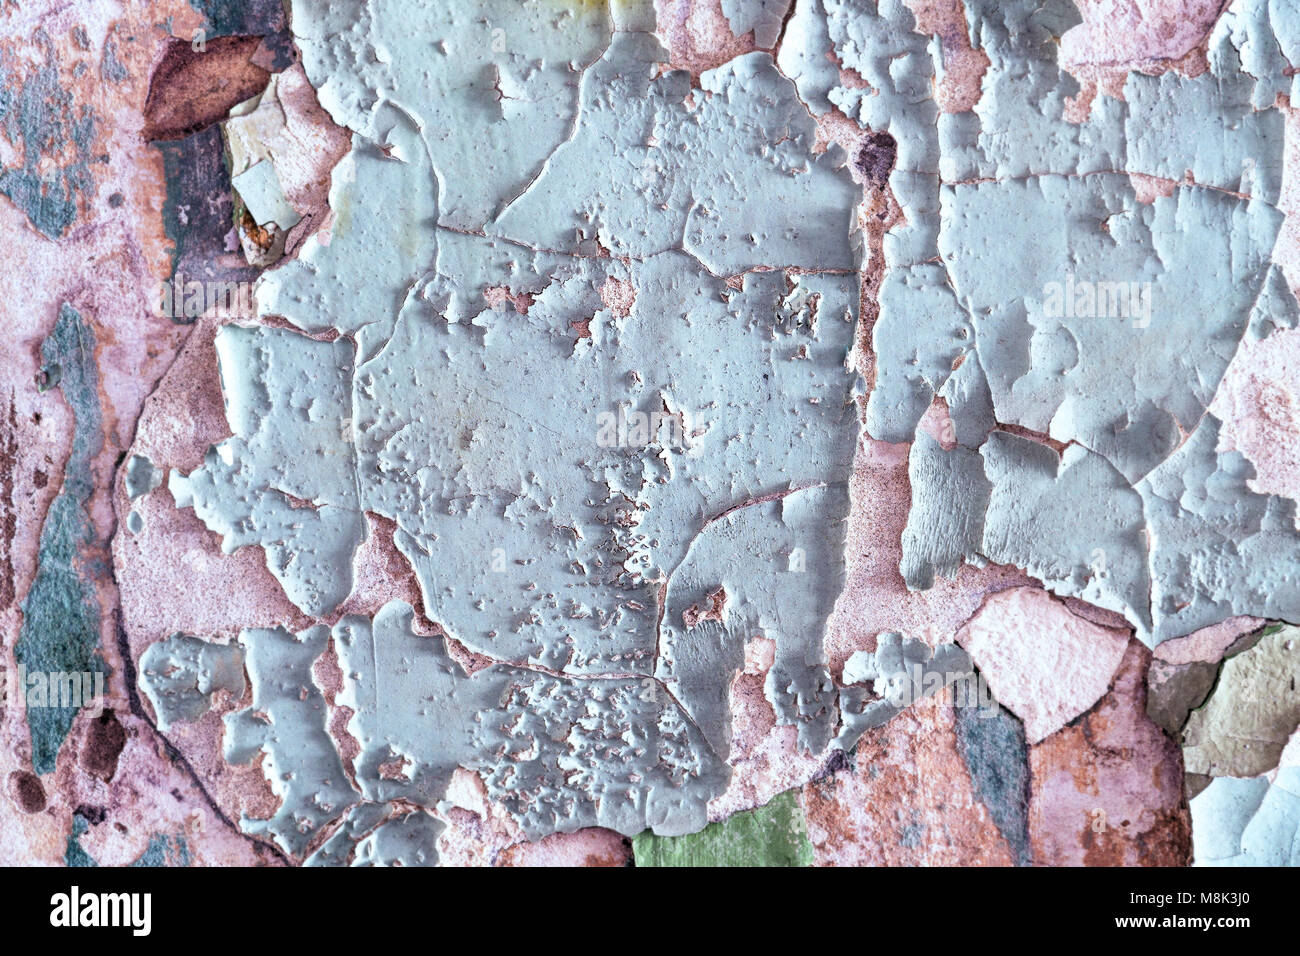 Peeling Paint On A Cement Wall   Stock Image